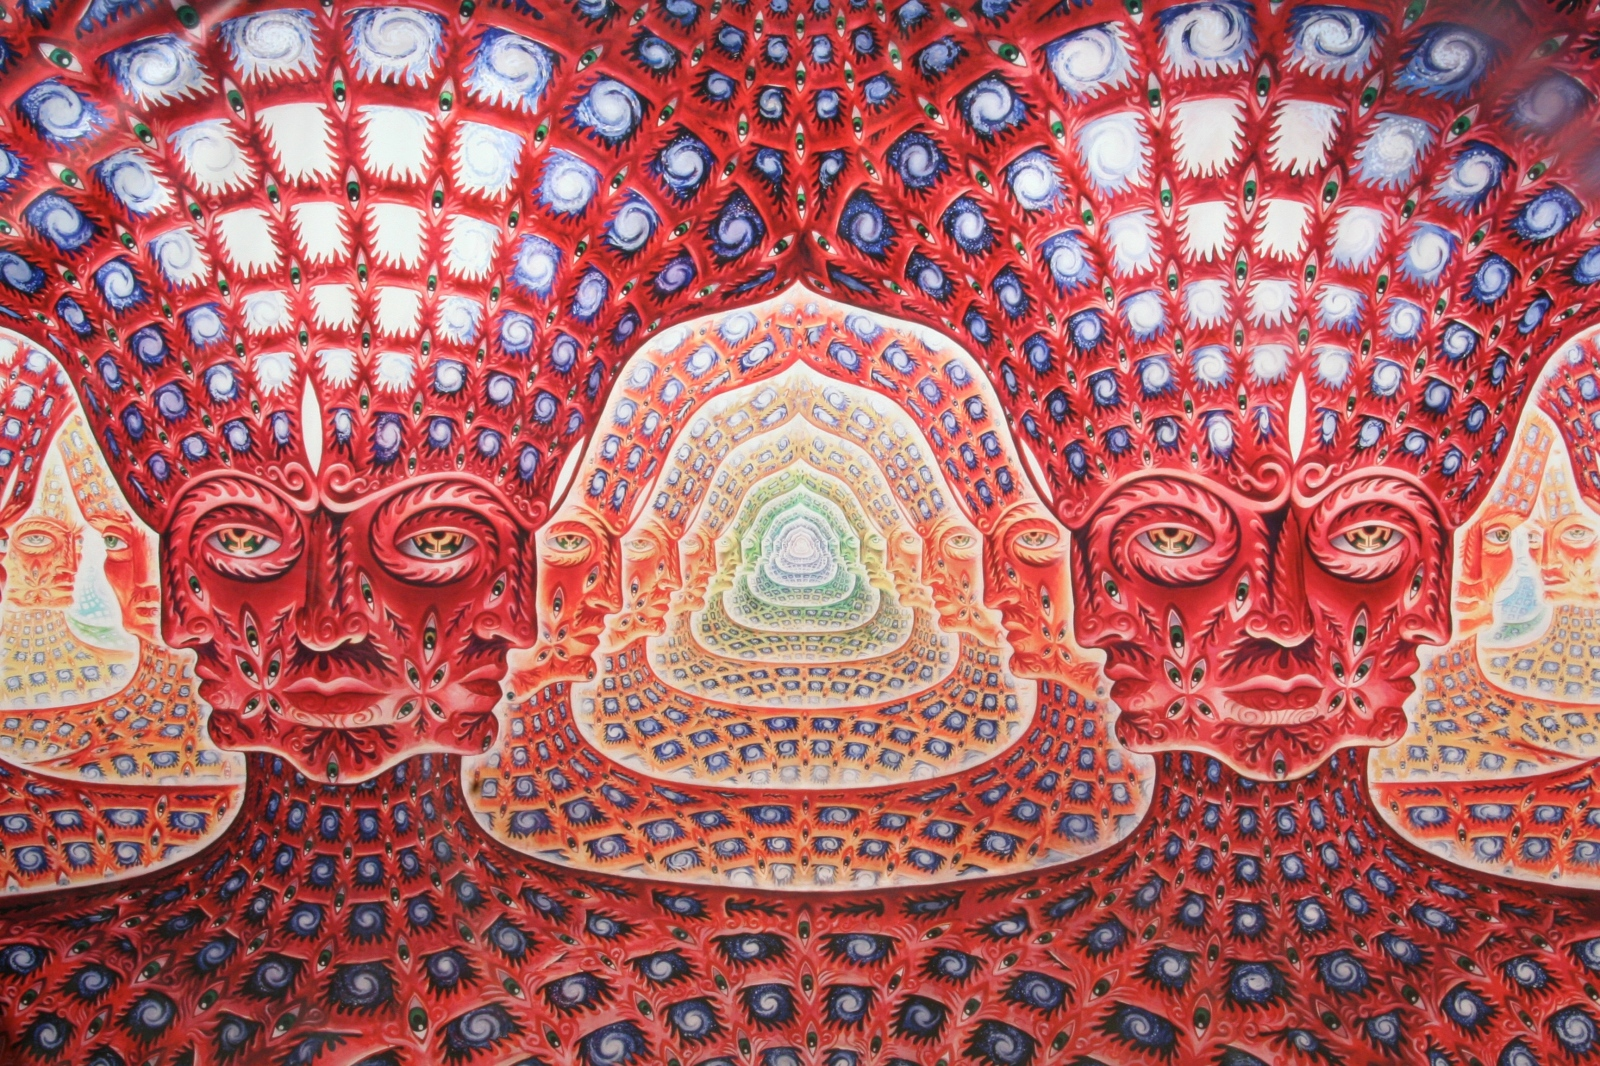 psychedelic art [ welcome to art wallpaper - artist fine art paintings for desktop wallpapers backgrounds ] best artist wallpapers index click on painting to enlarge.